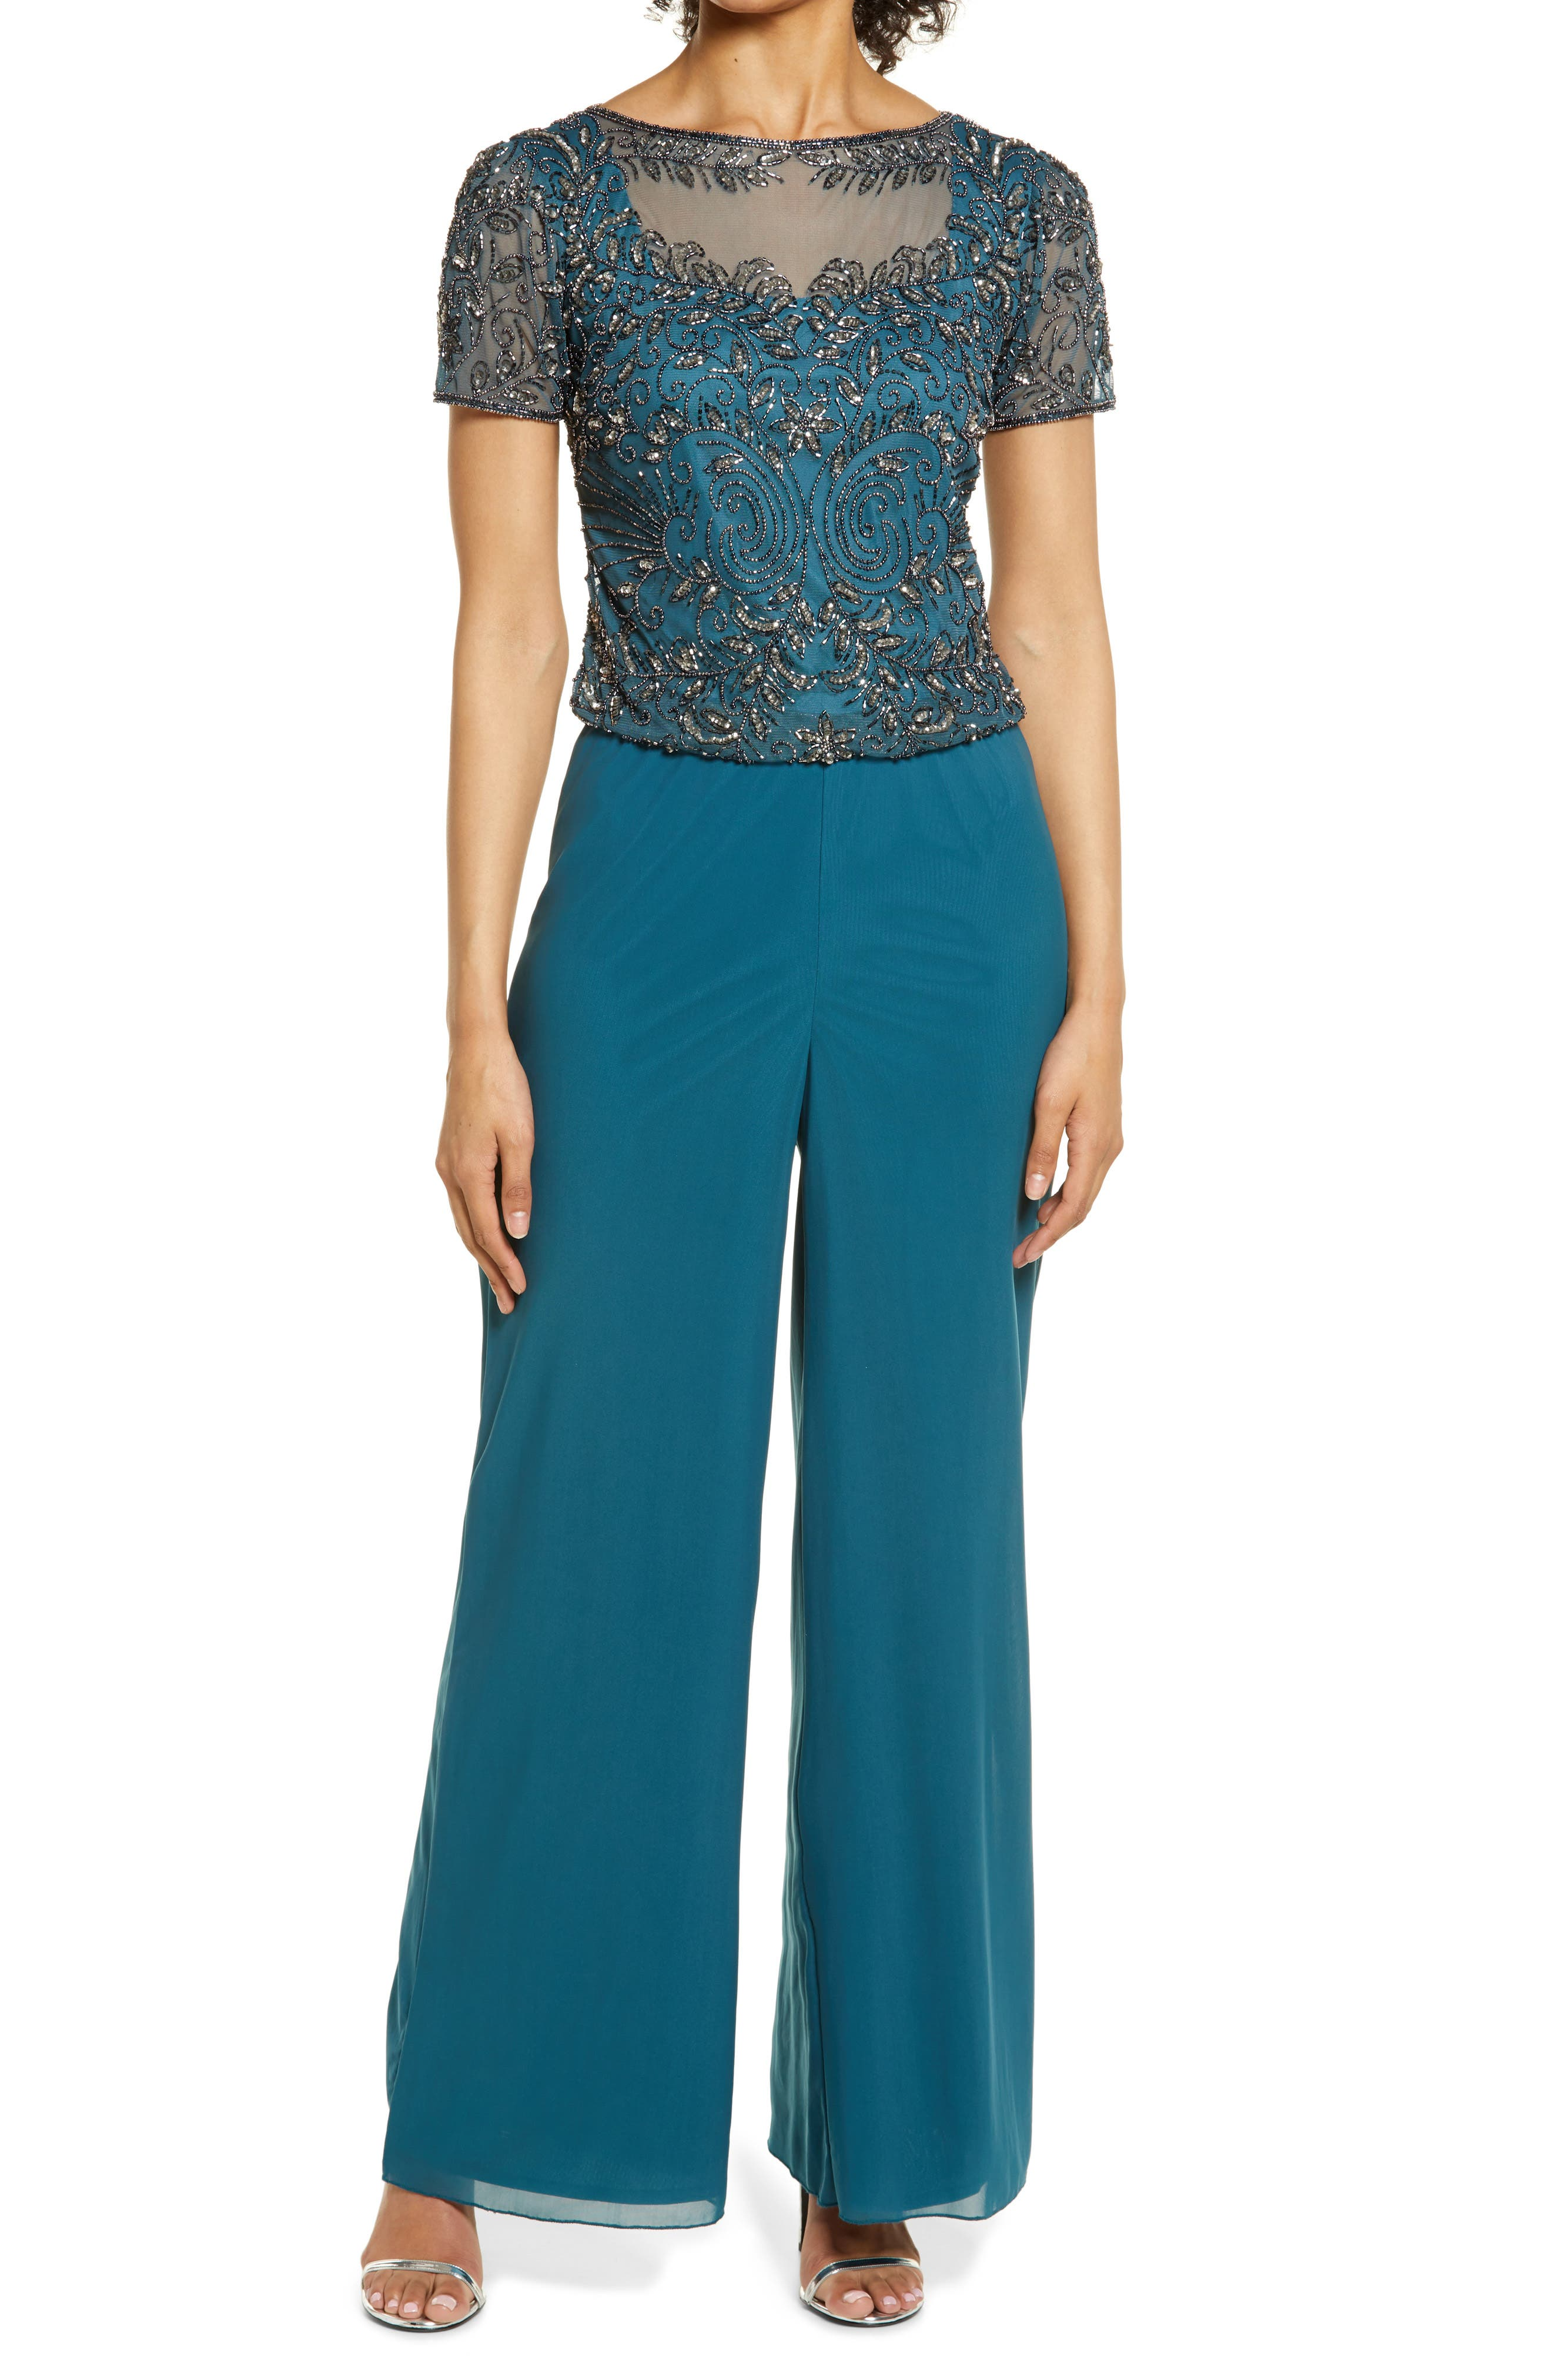 Vintage Overalls & Jumpsuits Womens Pisarro Nights Beaded Mock Two-Piece Jumpsuit Size 14 - Green $238.00 AT vintagedancer.com